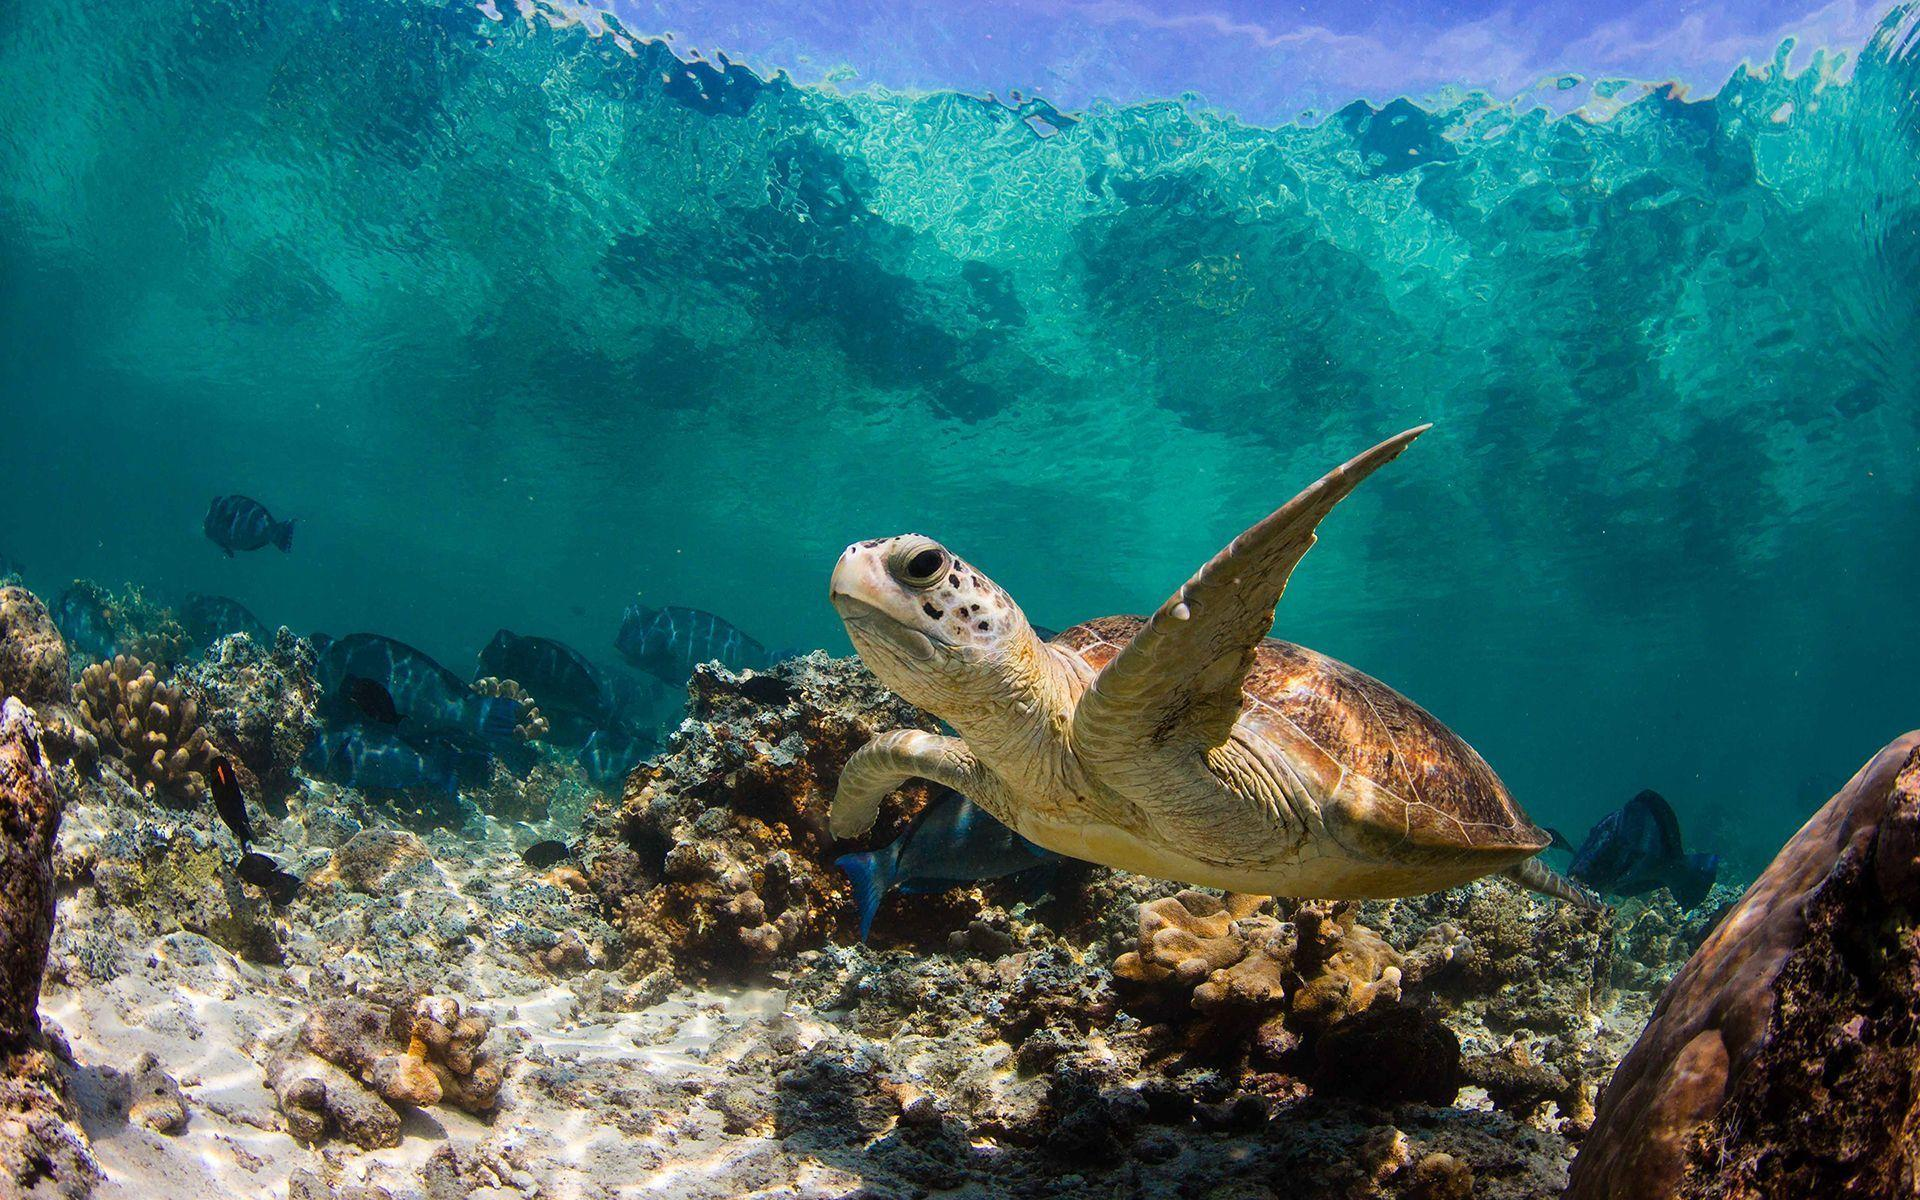 Sea Turtles Wallpaper Sea Turtles Wallpapers Wallpaper Cave